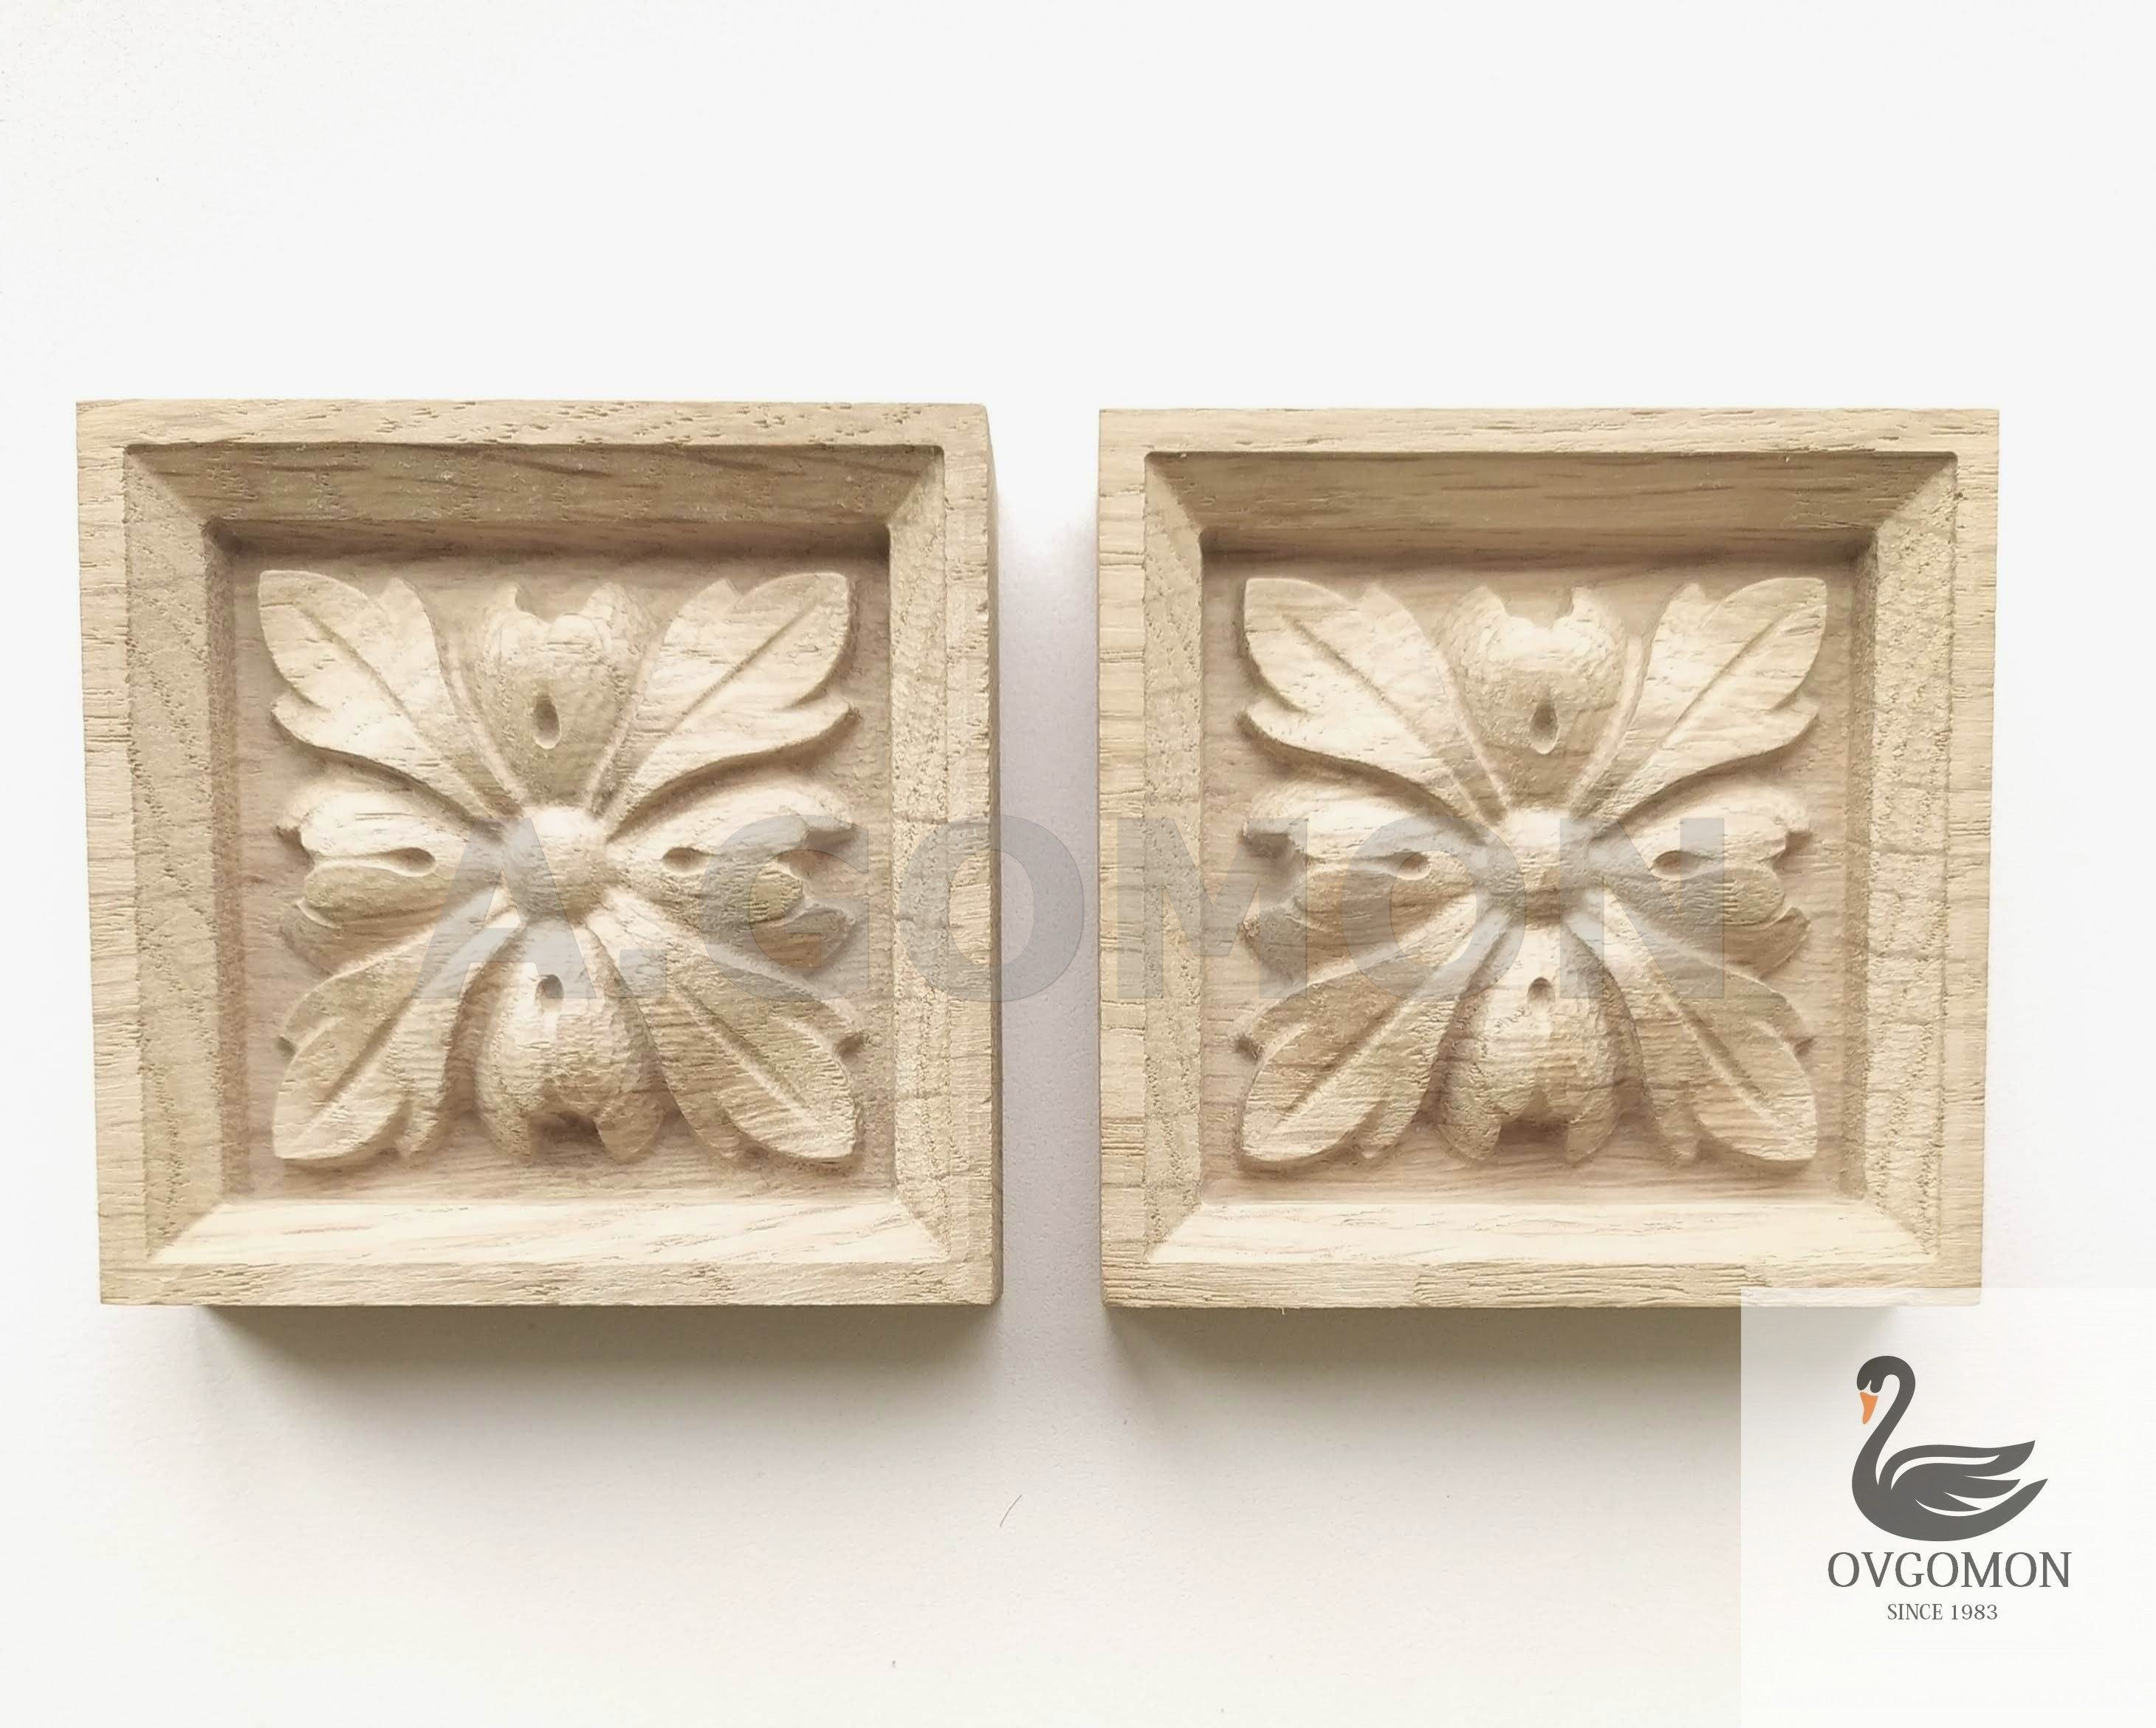 Lot of 2 Wooden carved decor